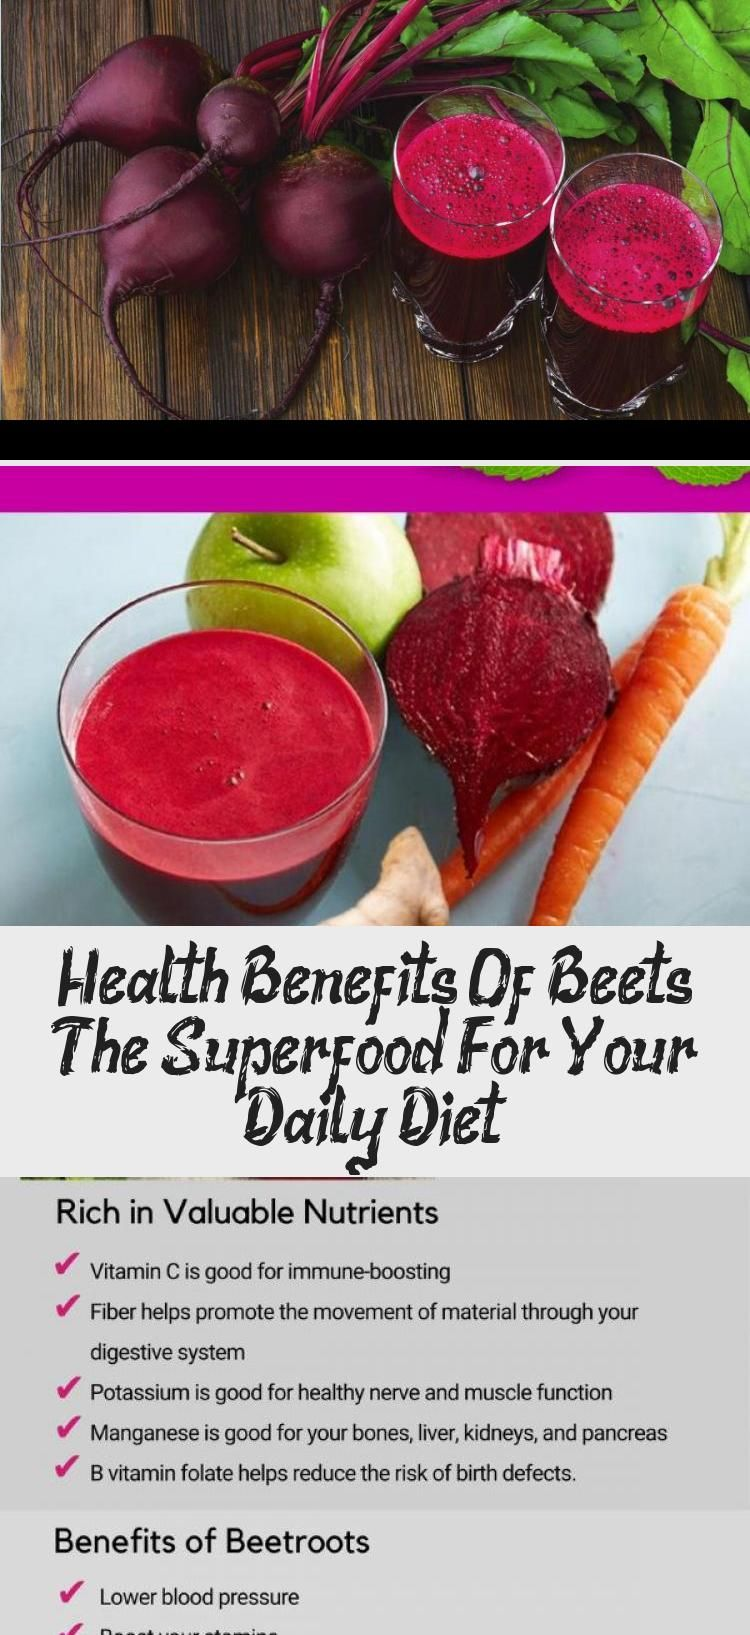 Healthy Beet Juice Exercise And Fitness Tips Exercise Fitness Fitnesstips Exercisetips Workouttips Workout Exerciseforbellyfat Exercisetoloseweight In 2020